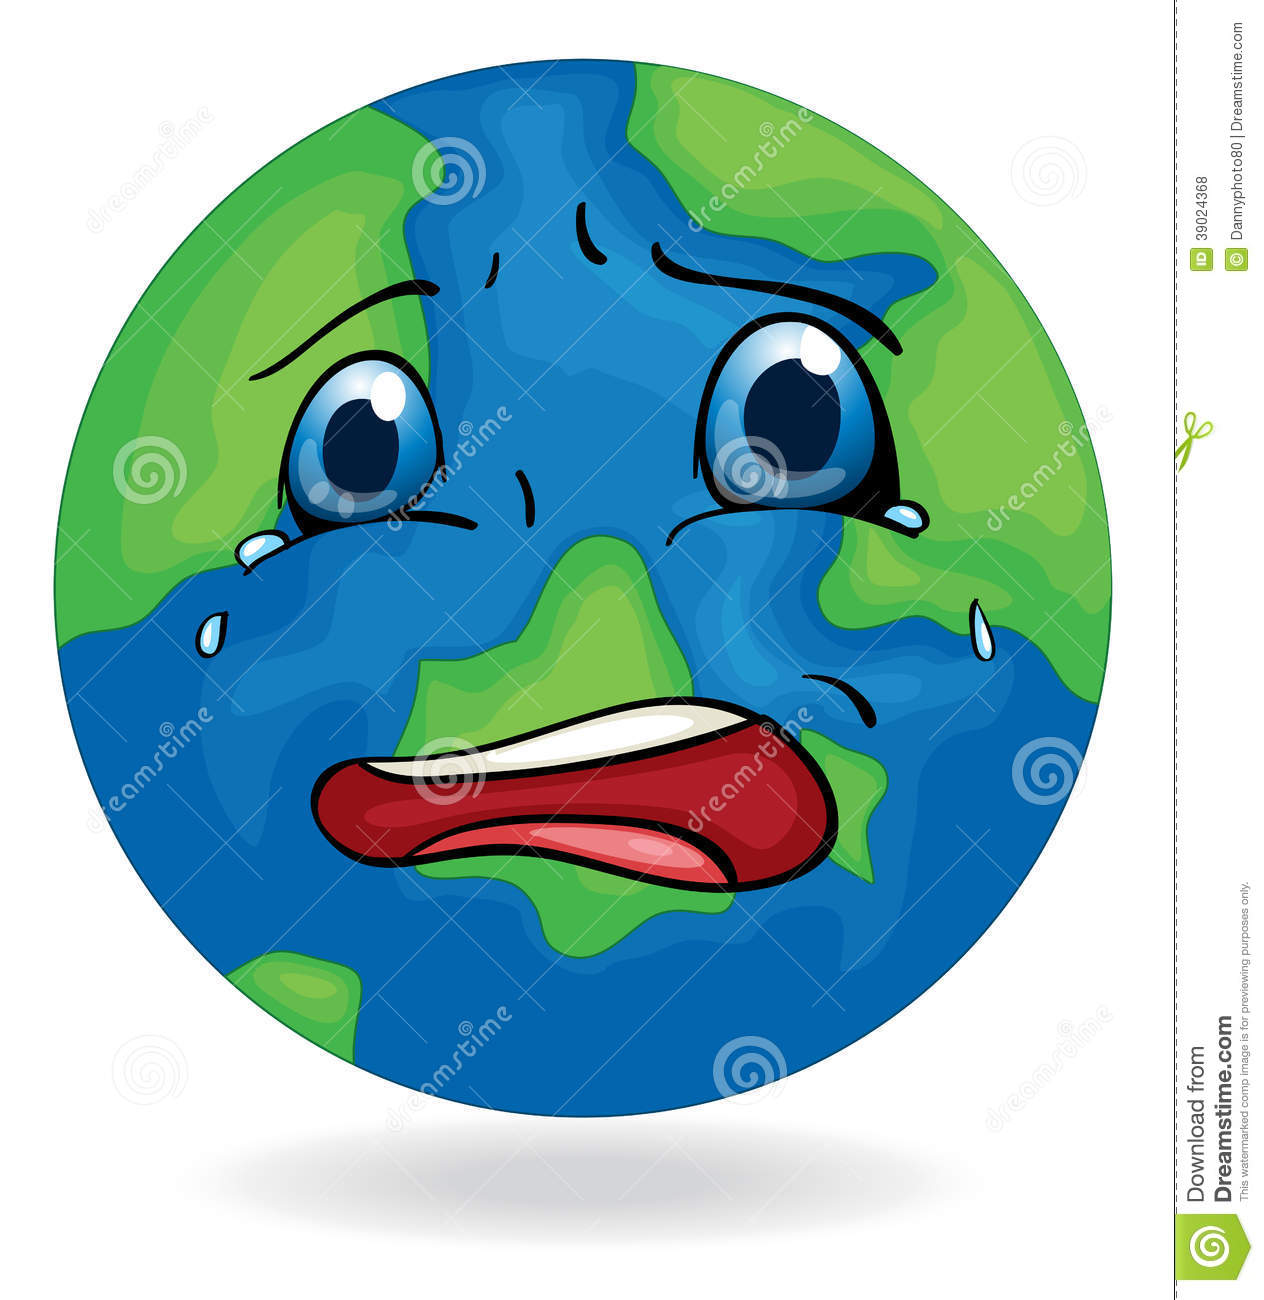 earth clipart animation - photo #33